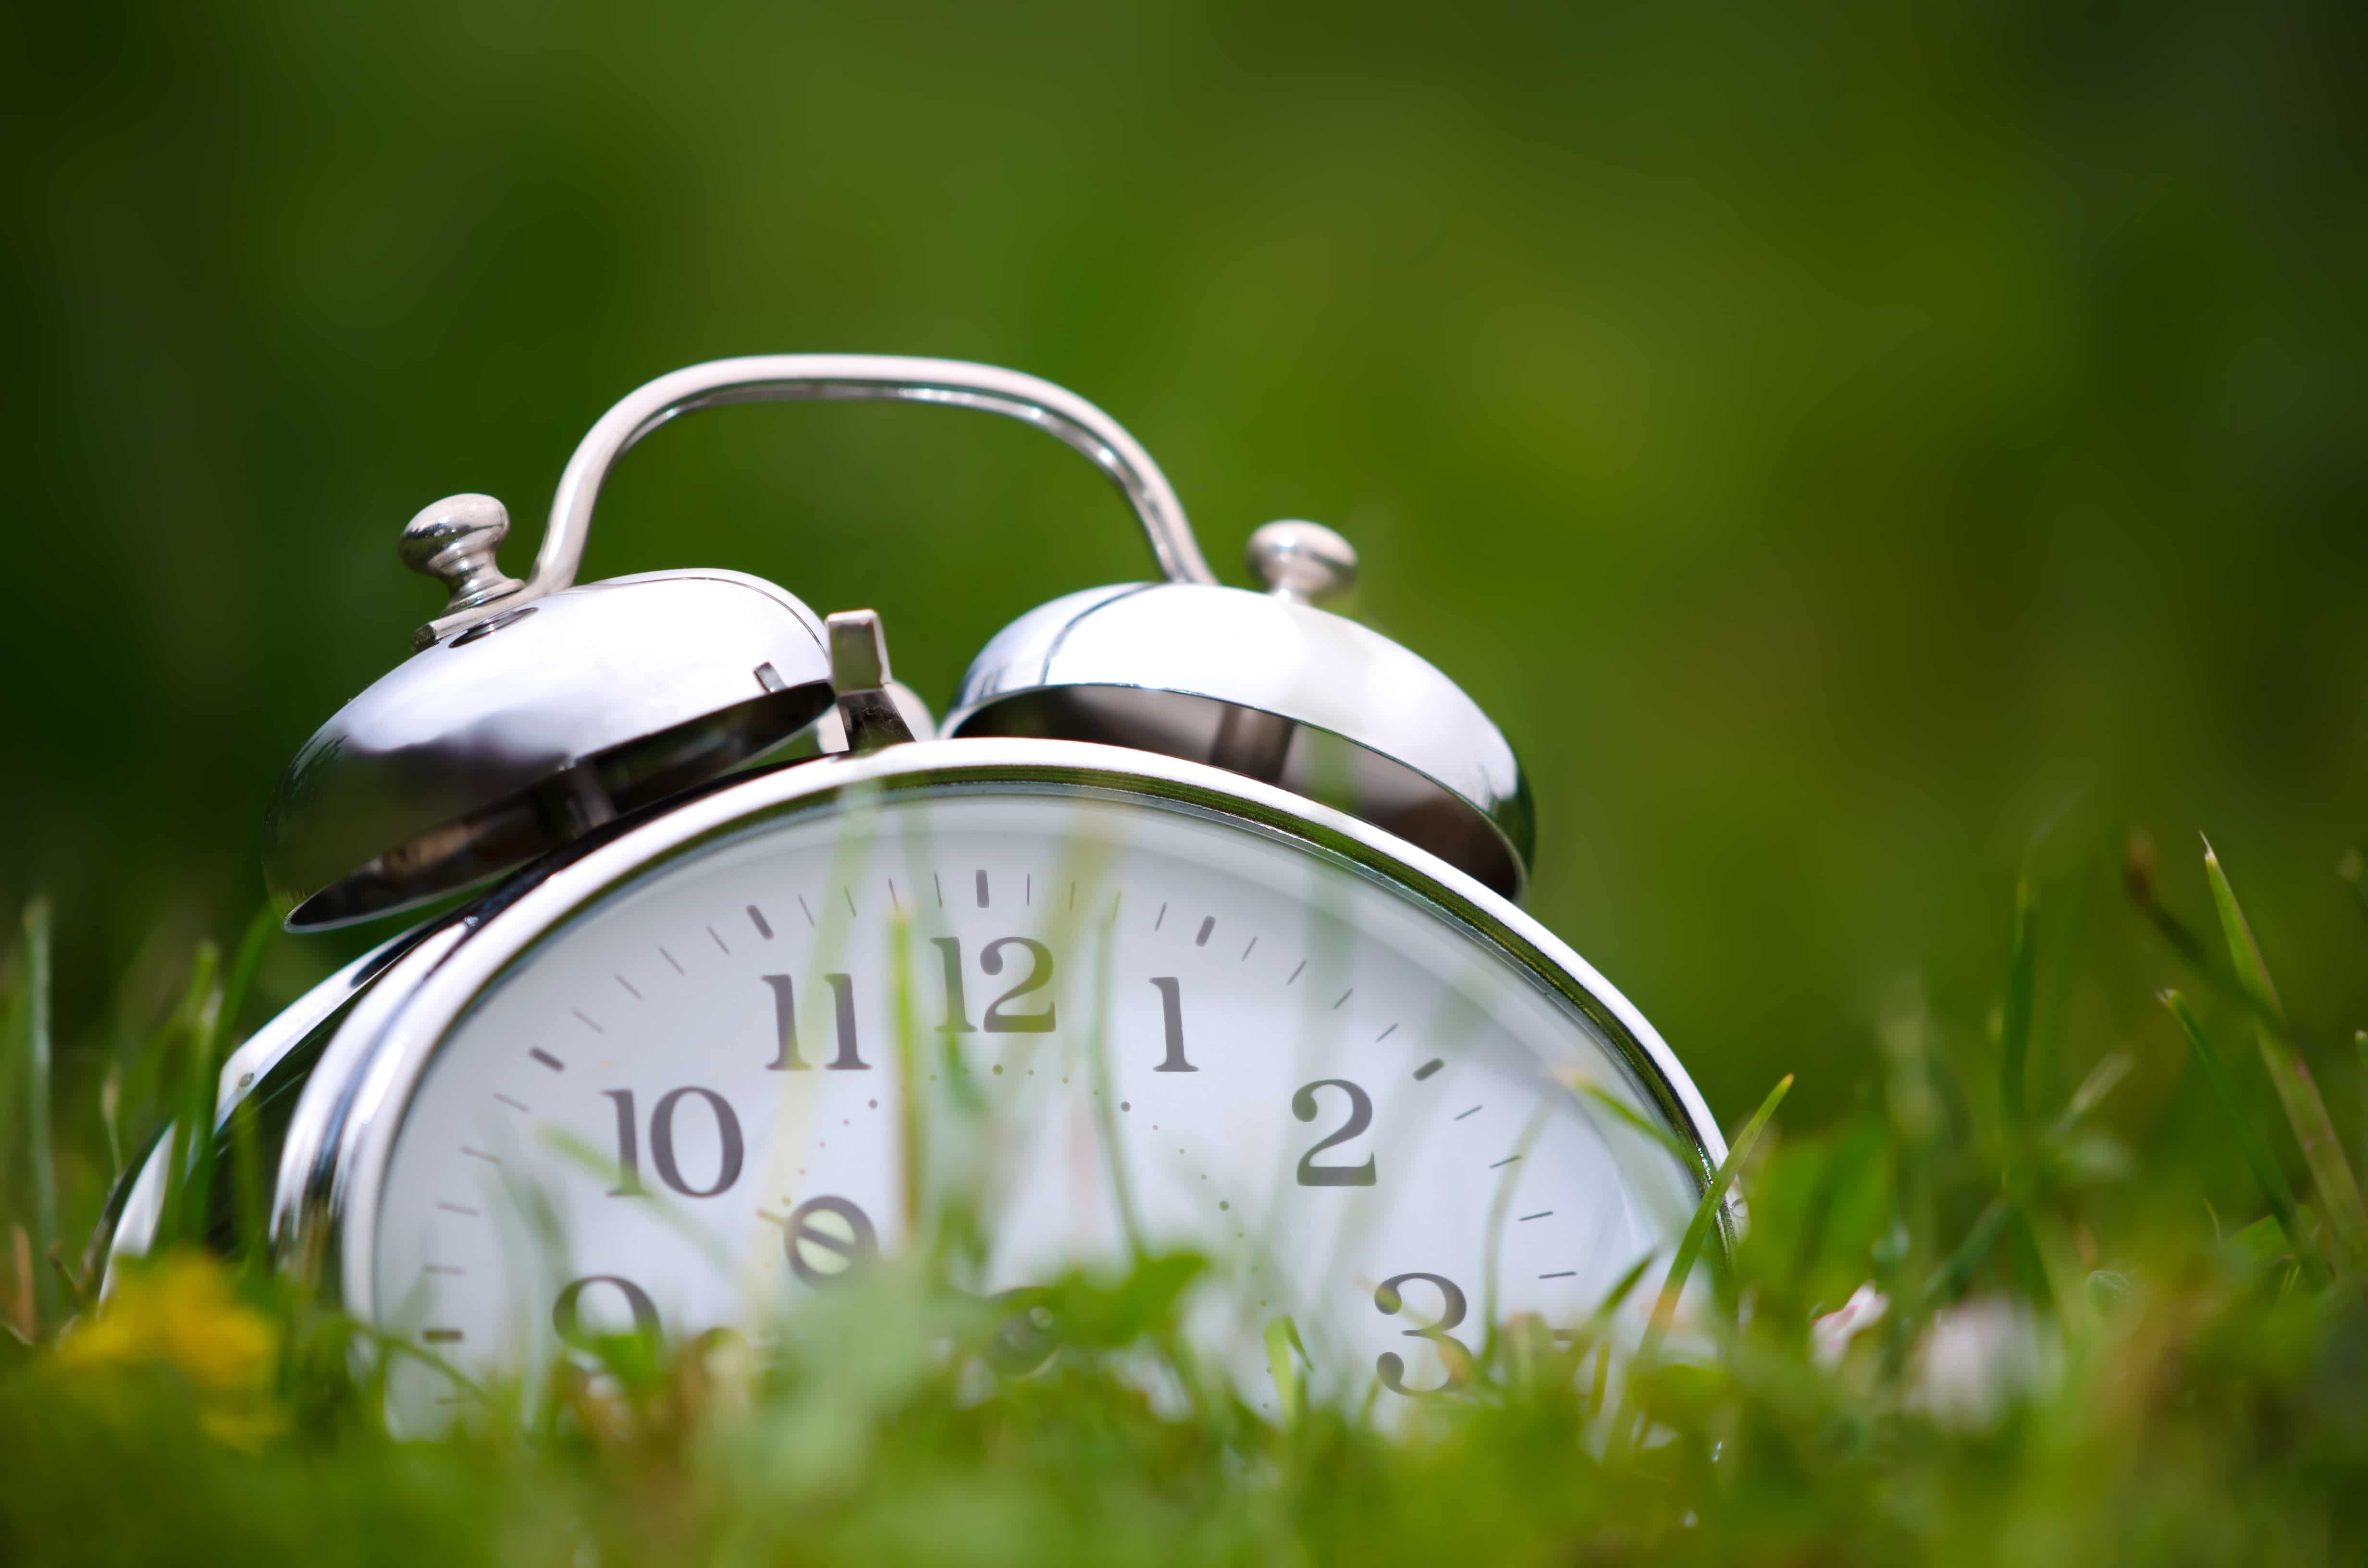 Old metal alarm clock among grass and flowers.